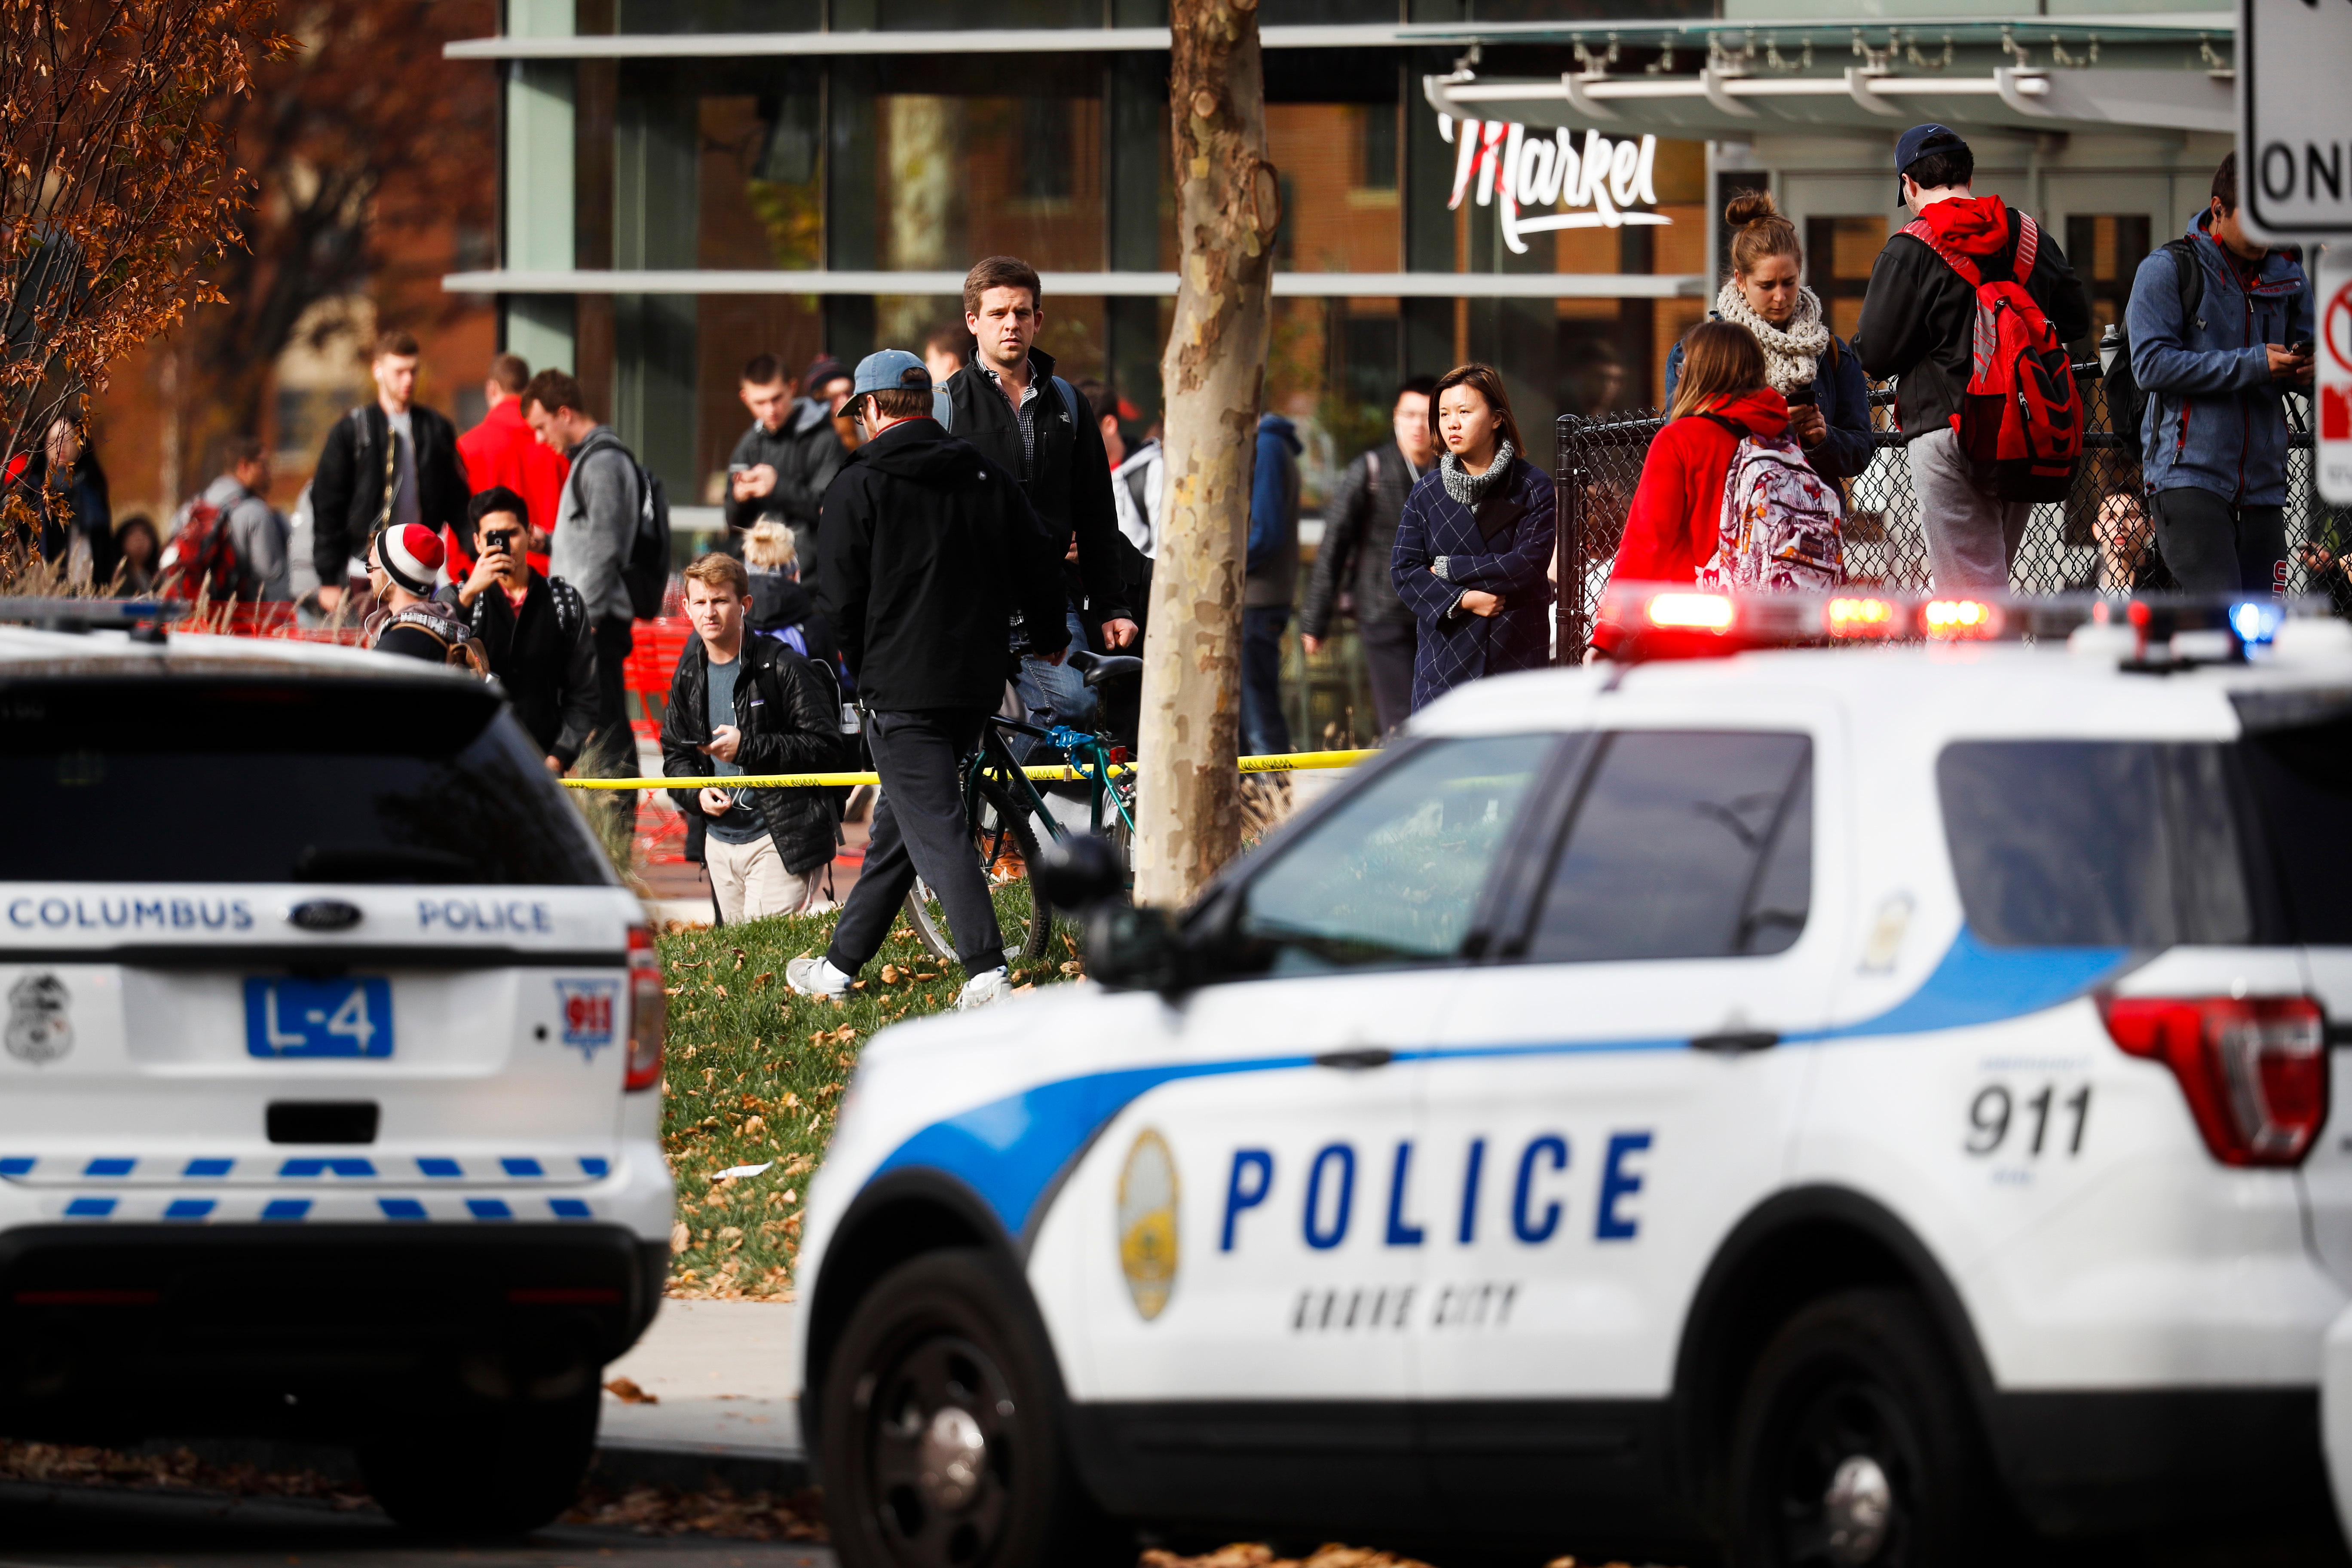 Students leave buildings surrounding Watts Hall as police respond to reports of an attack on campus at Ohio State University, Monday, Nov. 28, 2016, in Columbus, Ohio. (AP Photo/John Minchillo)<p></p>